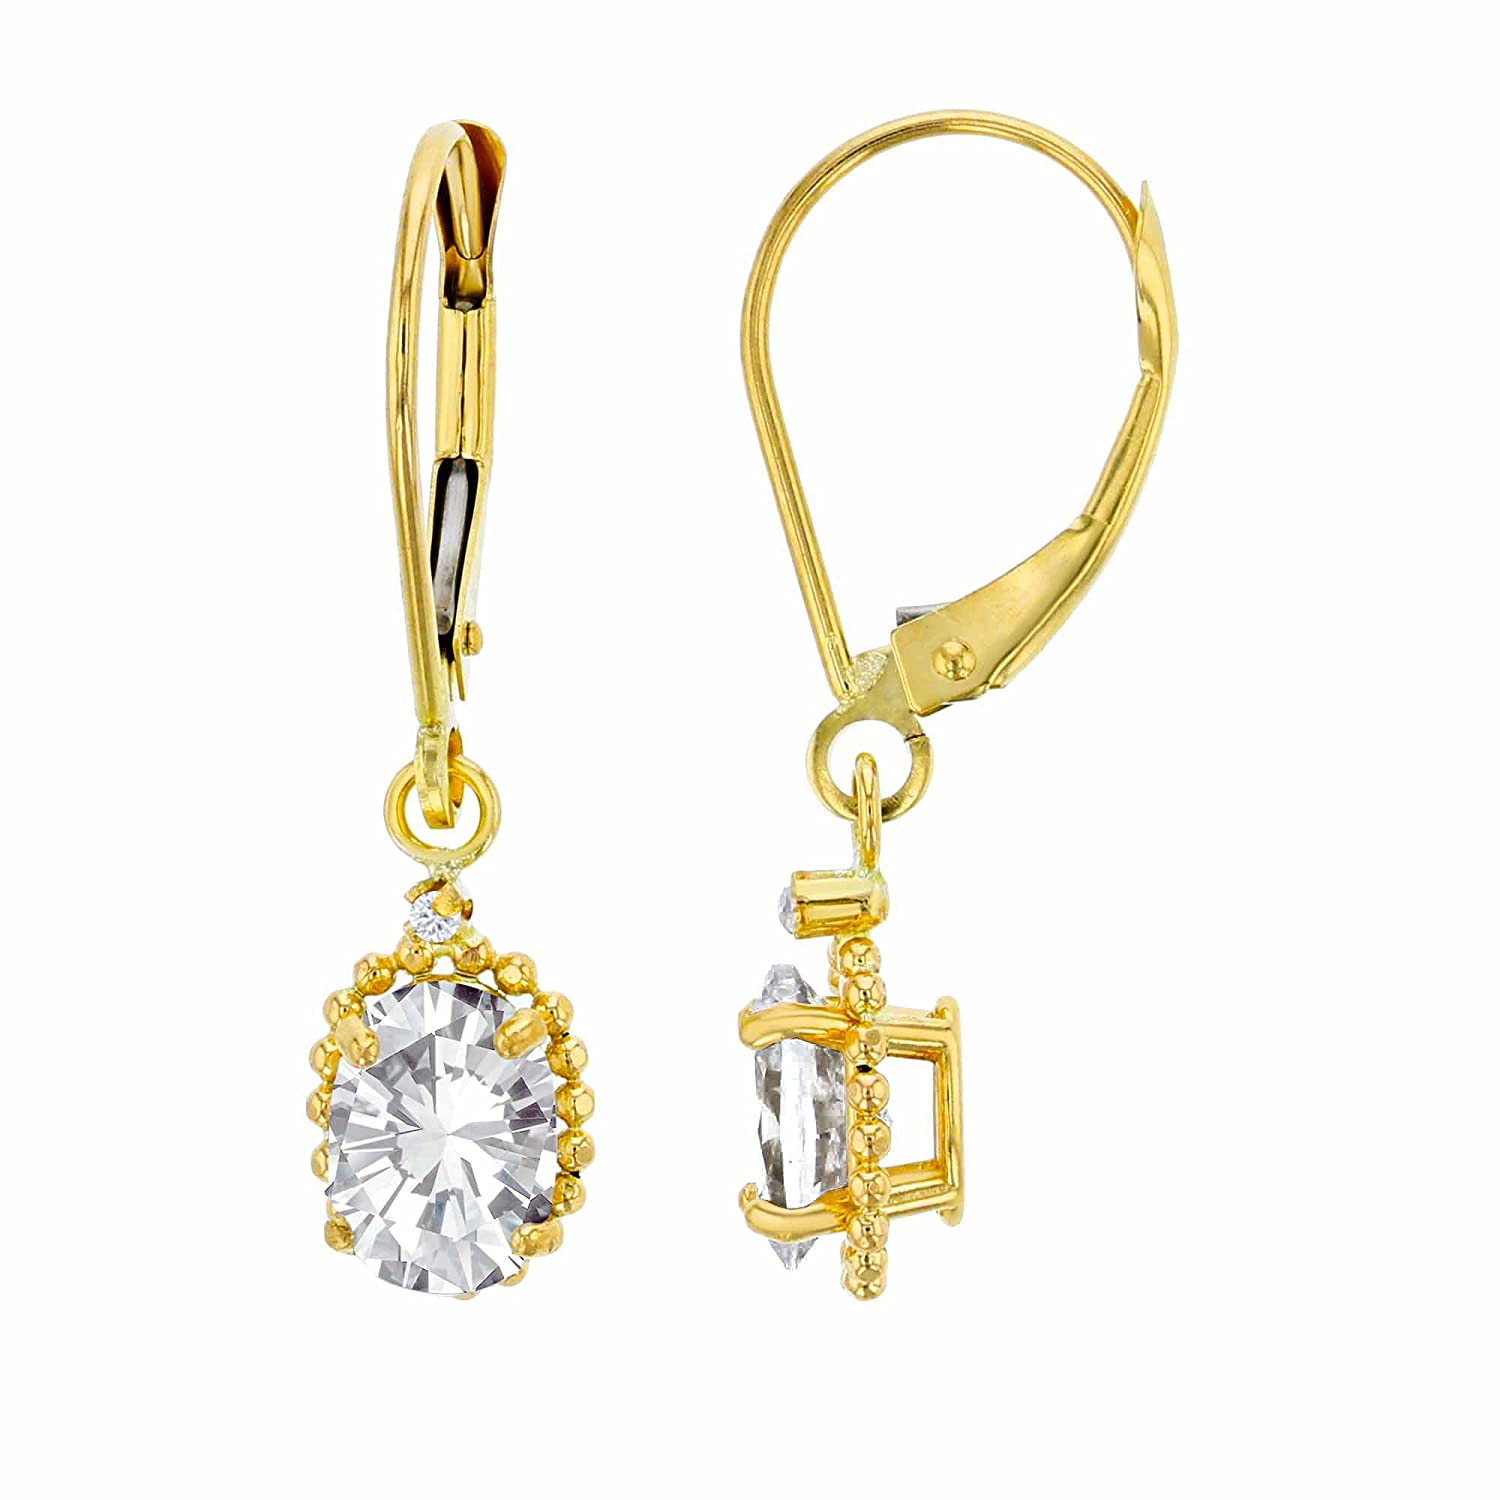 10K Yellow Gold 1.25mm Round White Topaz /& 6x4mm Oval Gemstone Bead Frame Drop Leverback Earring